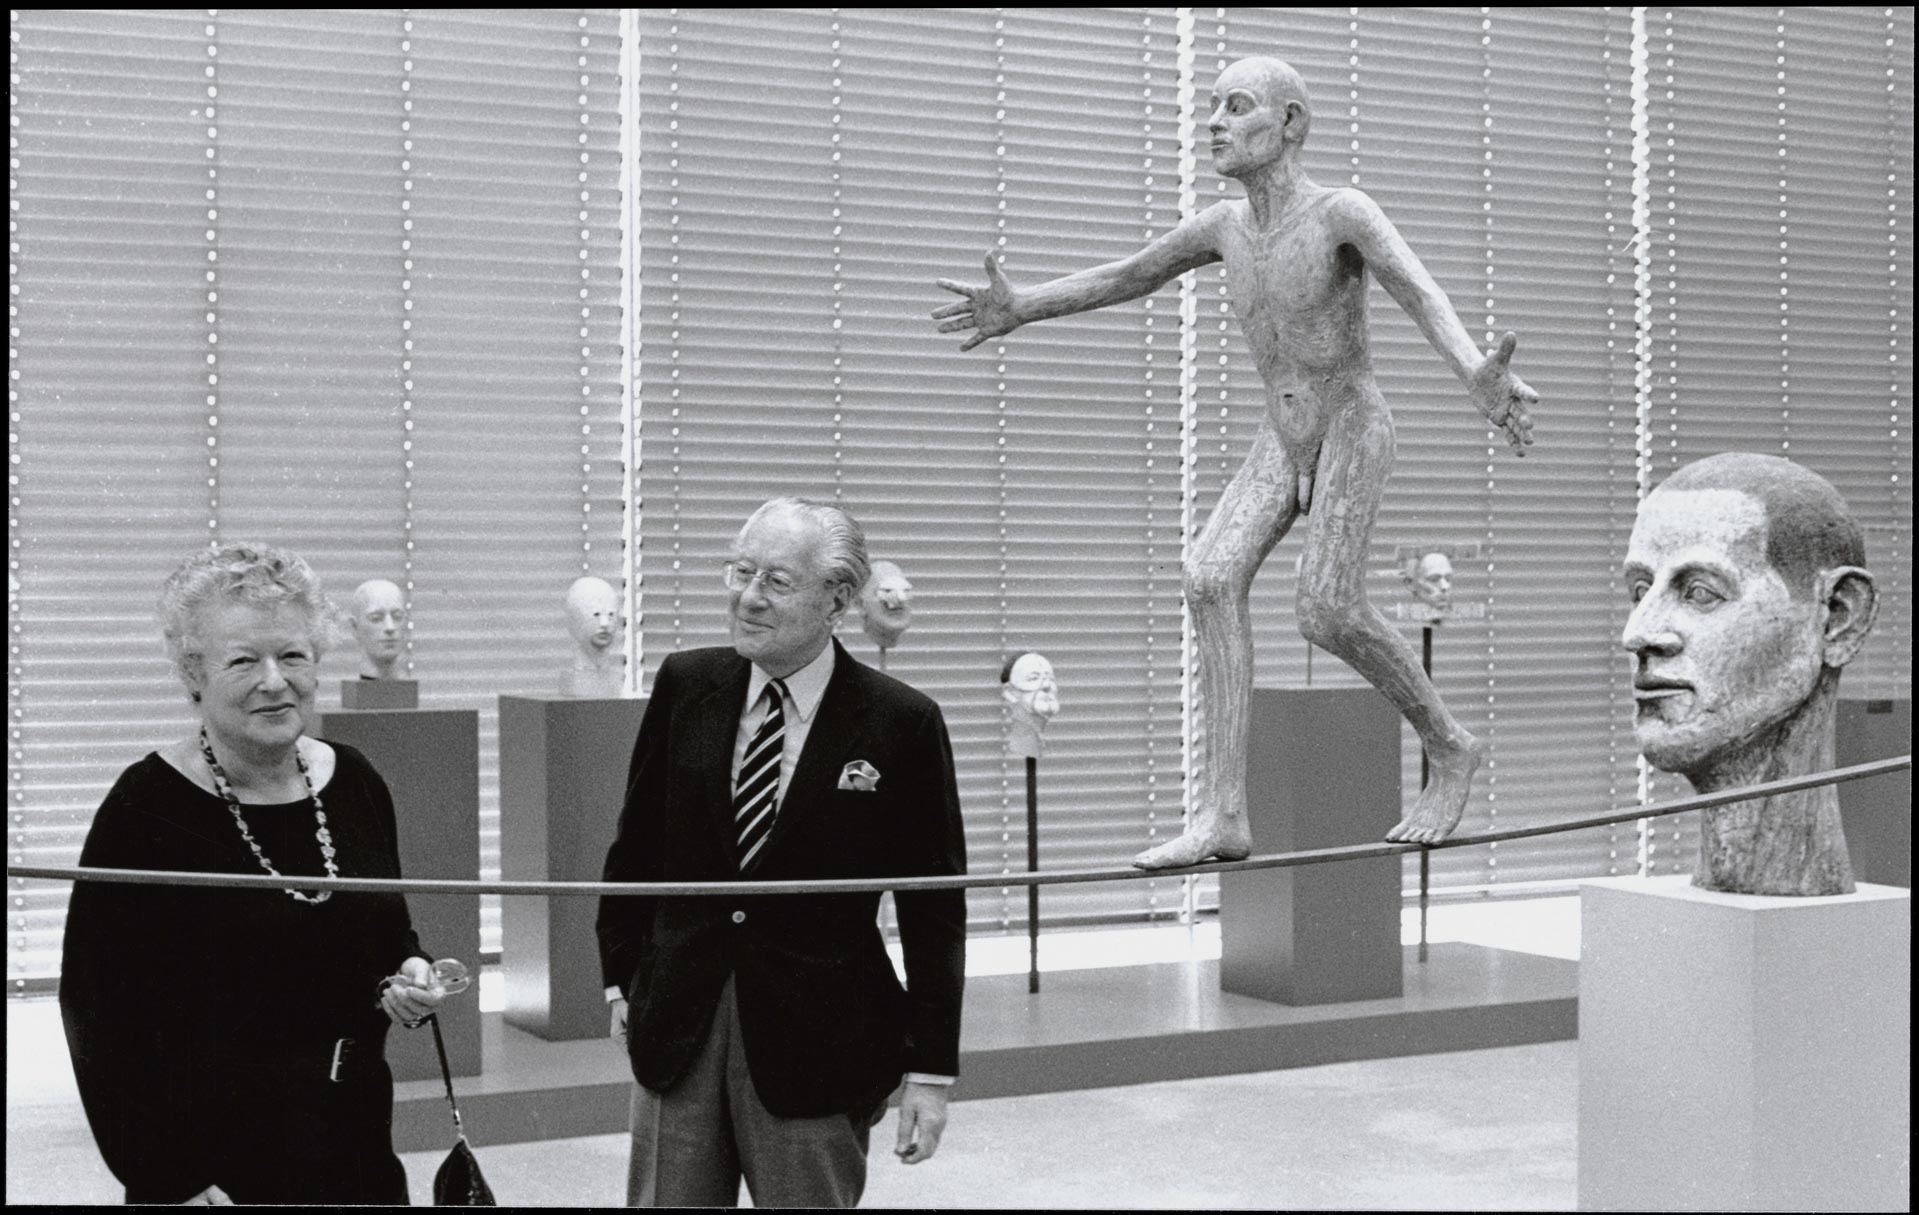 Sir Robert and Lady Sainsbury in the gallery, 1985